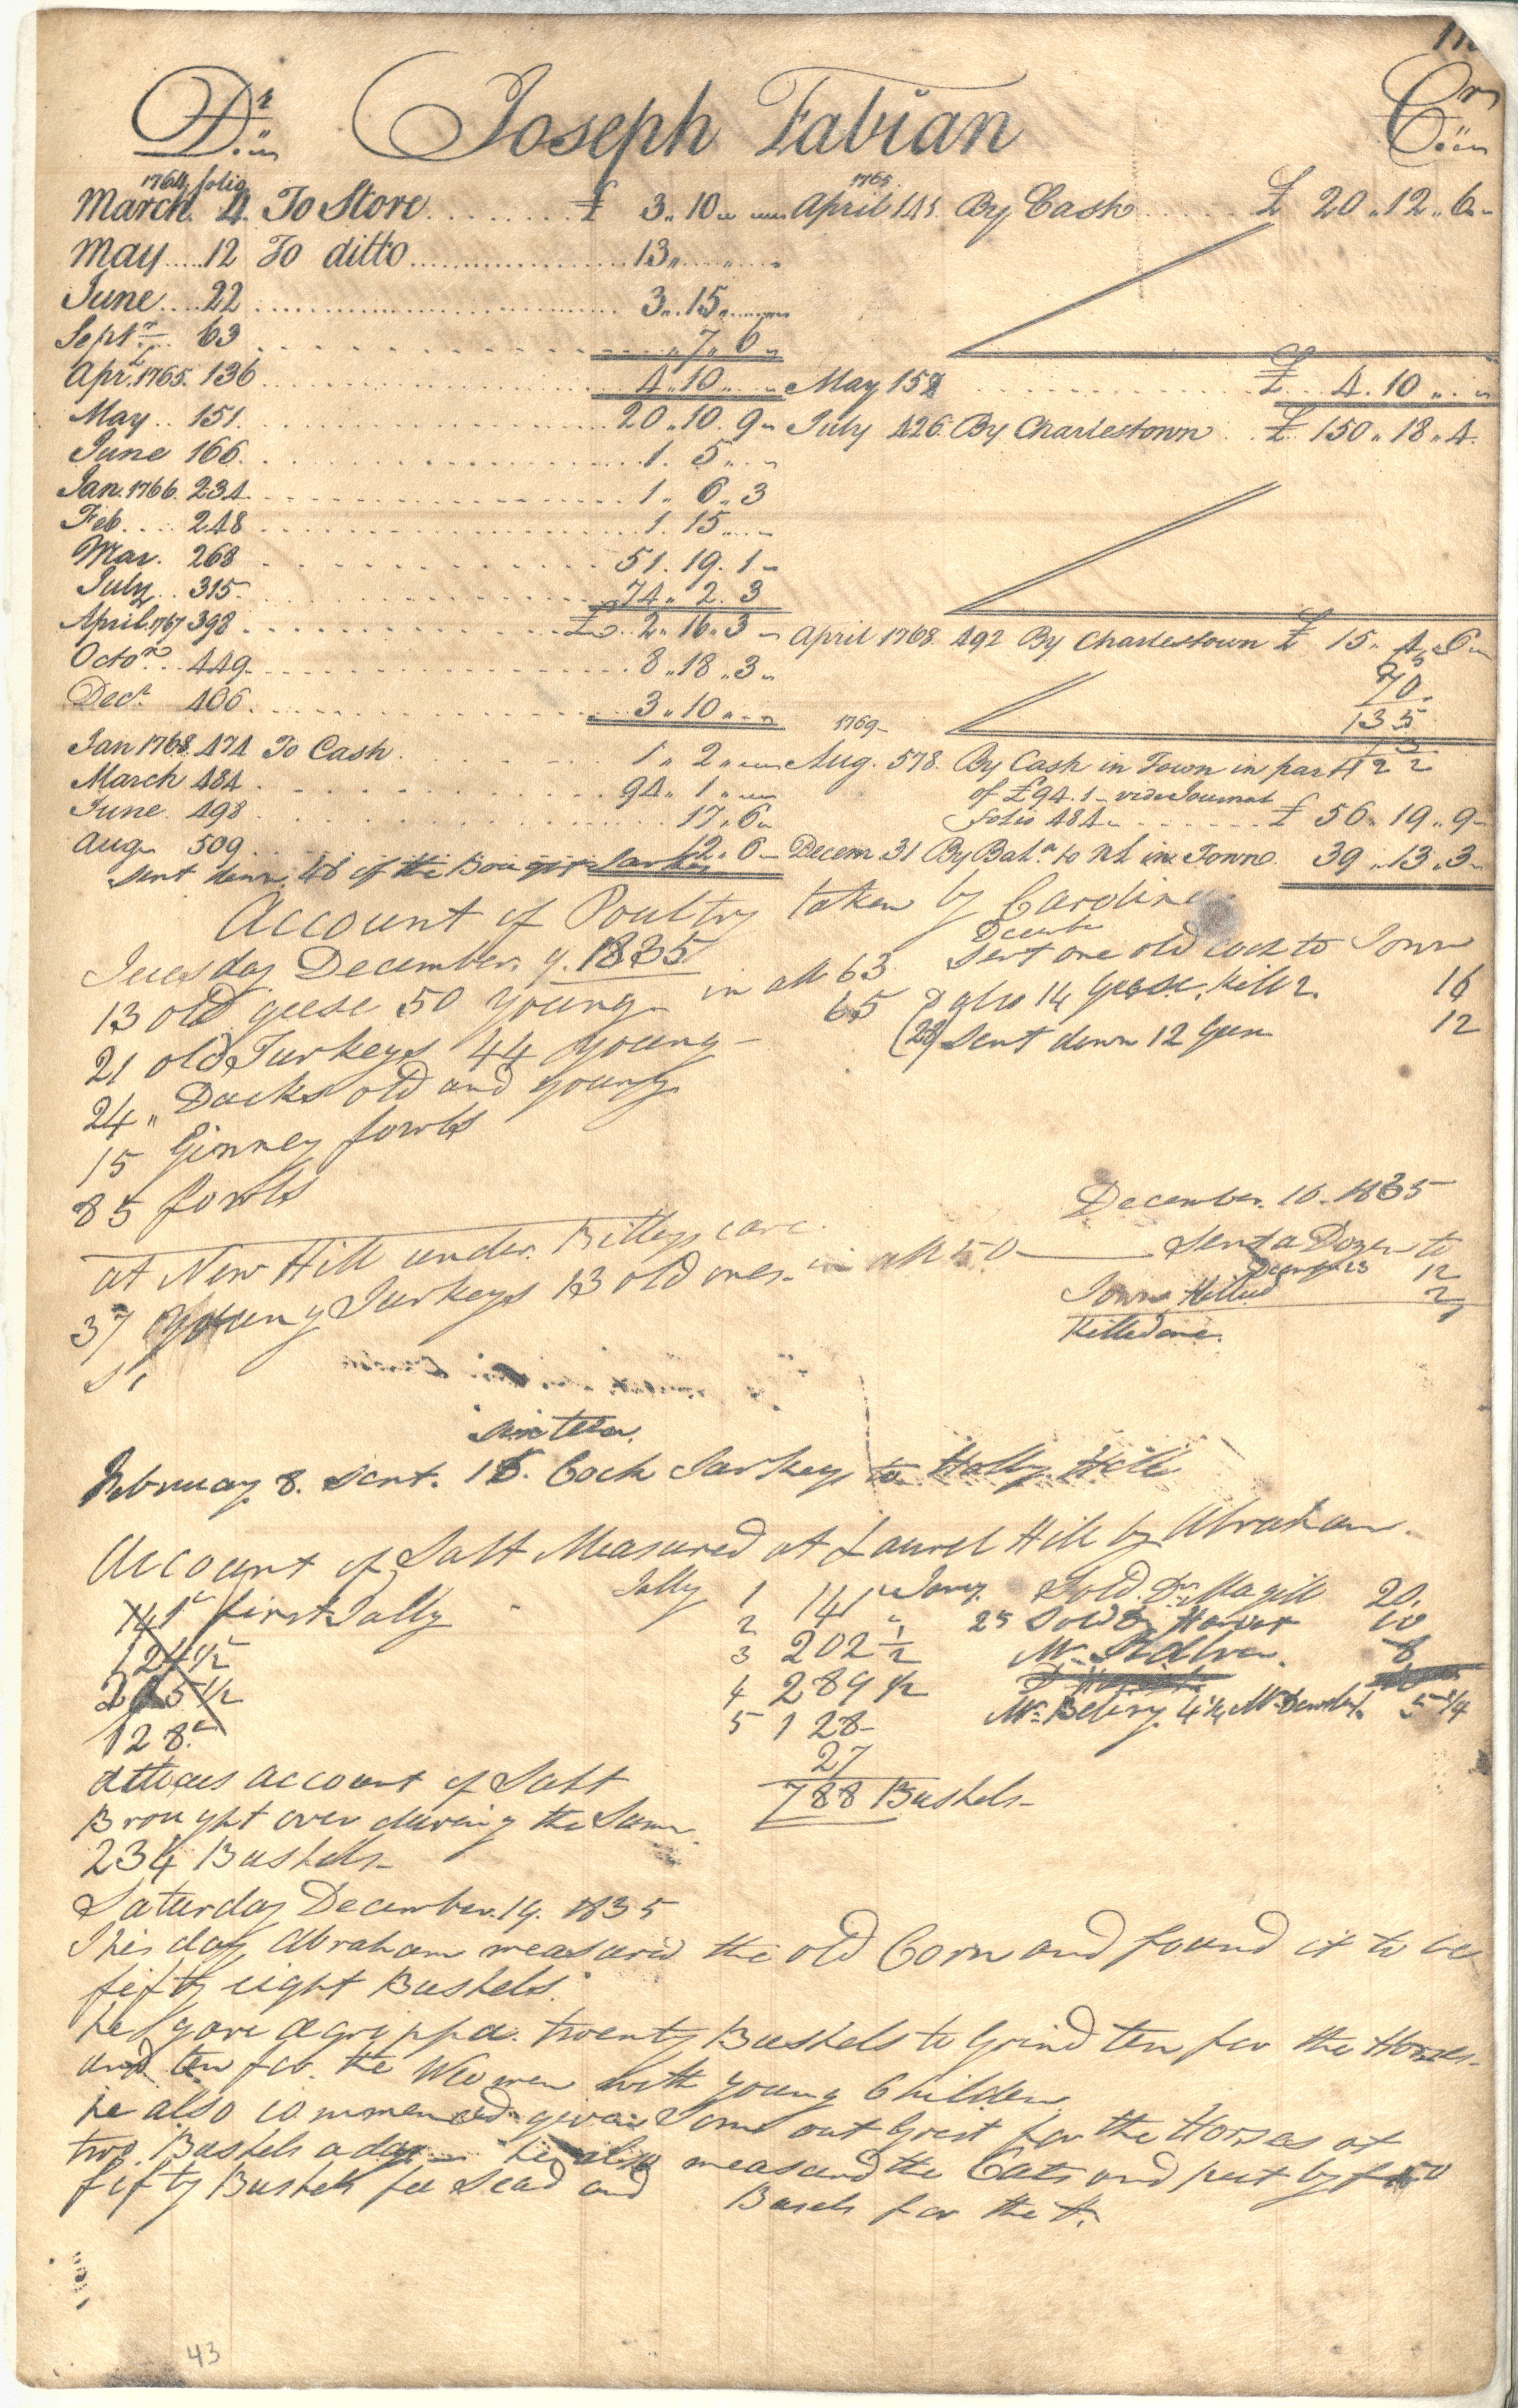 Plowden Weston's Business Ledger, page 110